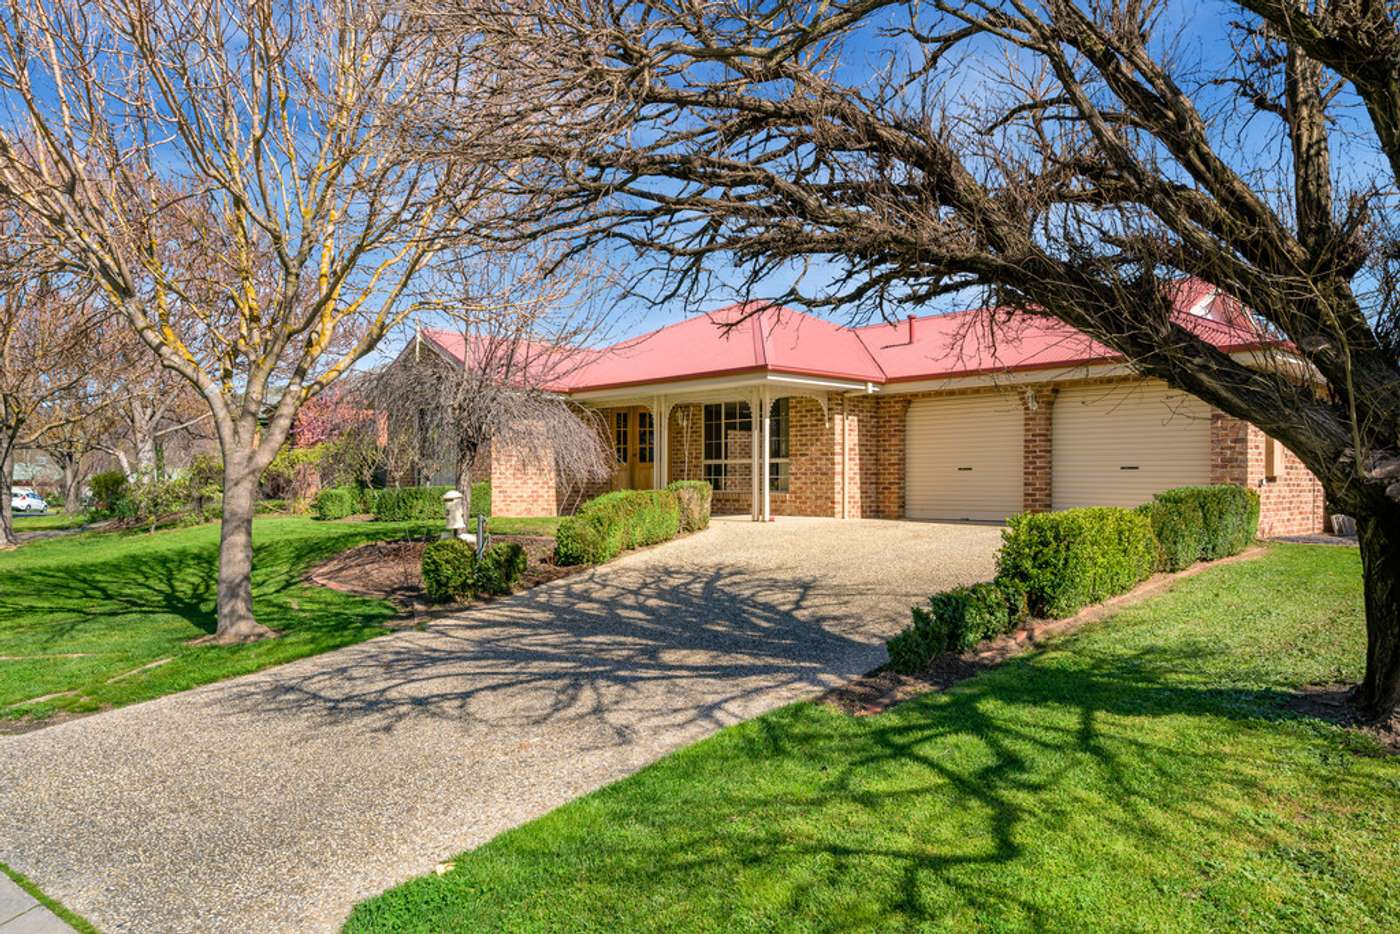 Main view of Homely house listing, 3 Saunders Crescent, Wodonga VIC 3690